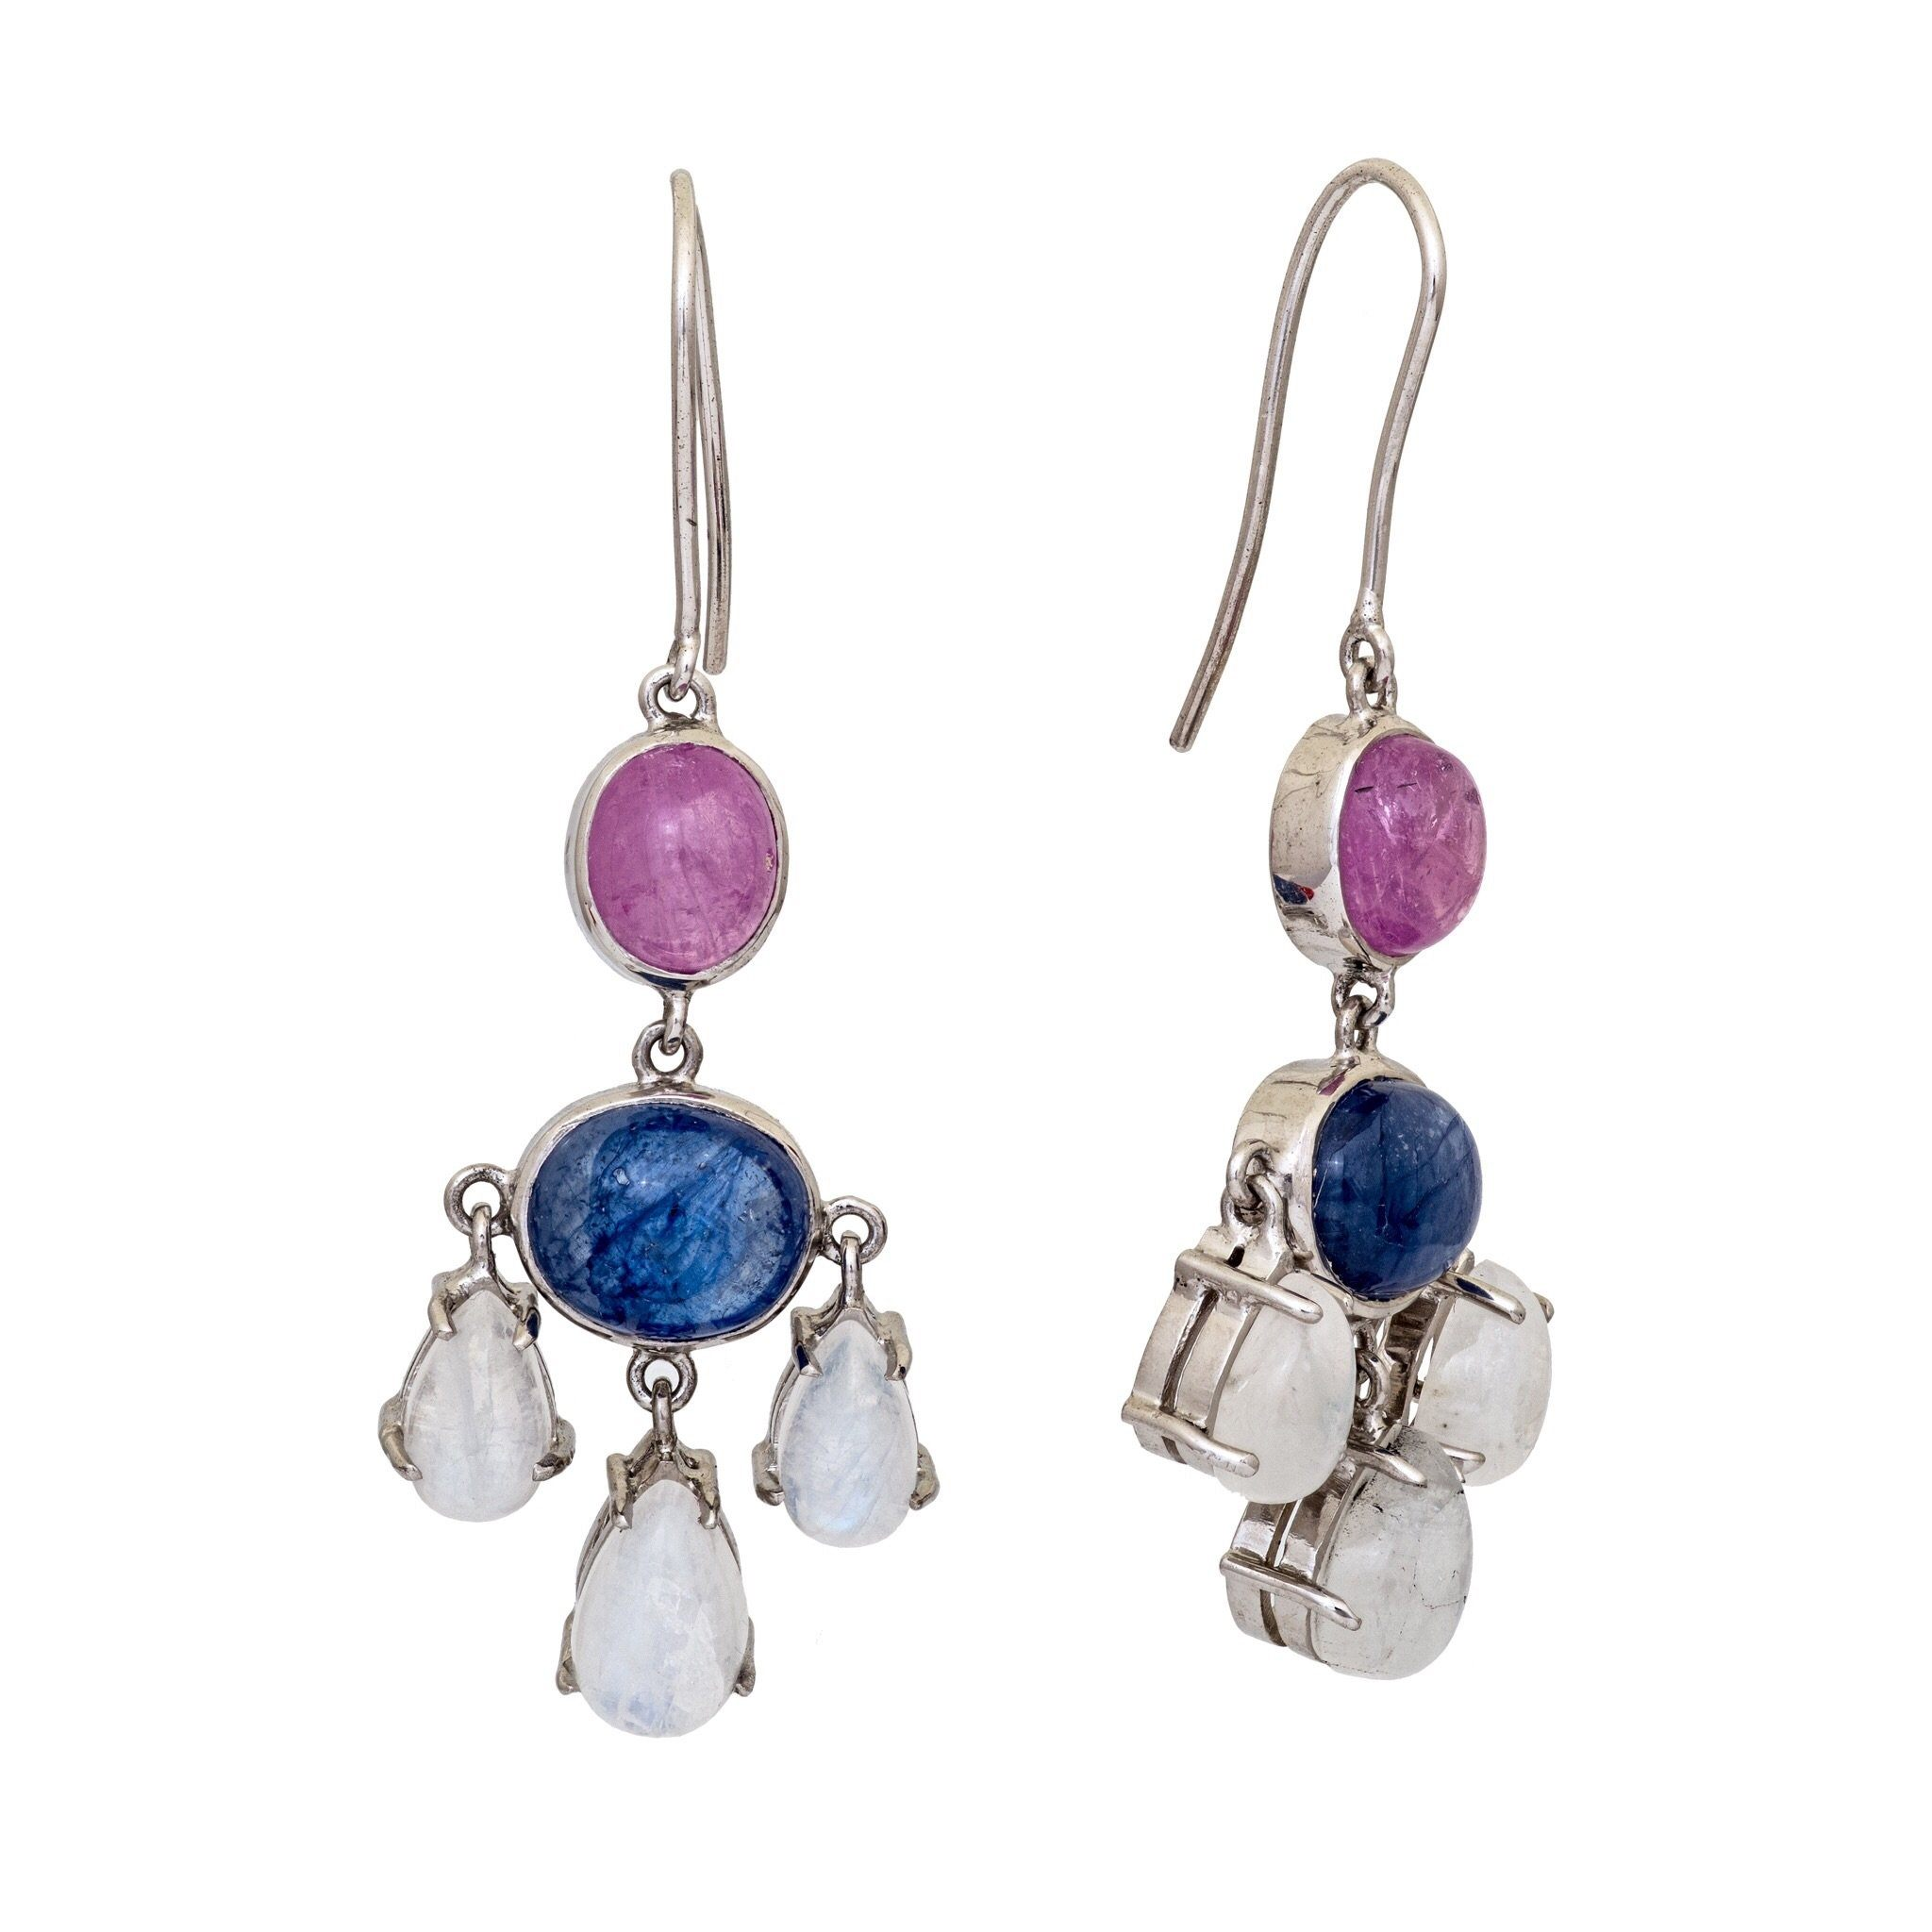 HAE ruby and moonstone chandelier earrings - MadamSiam